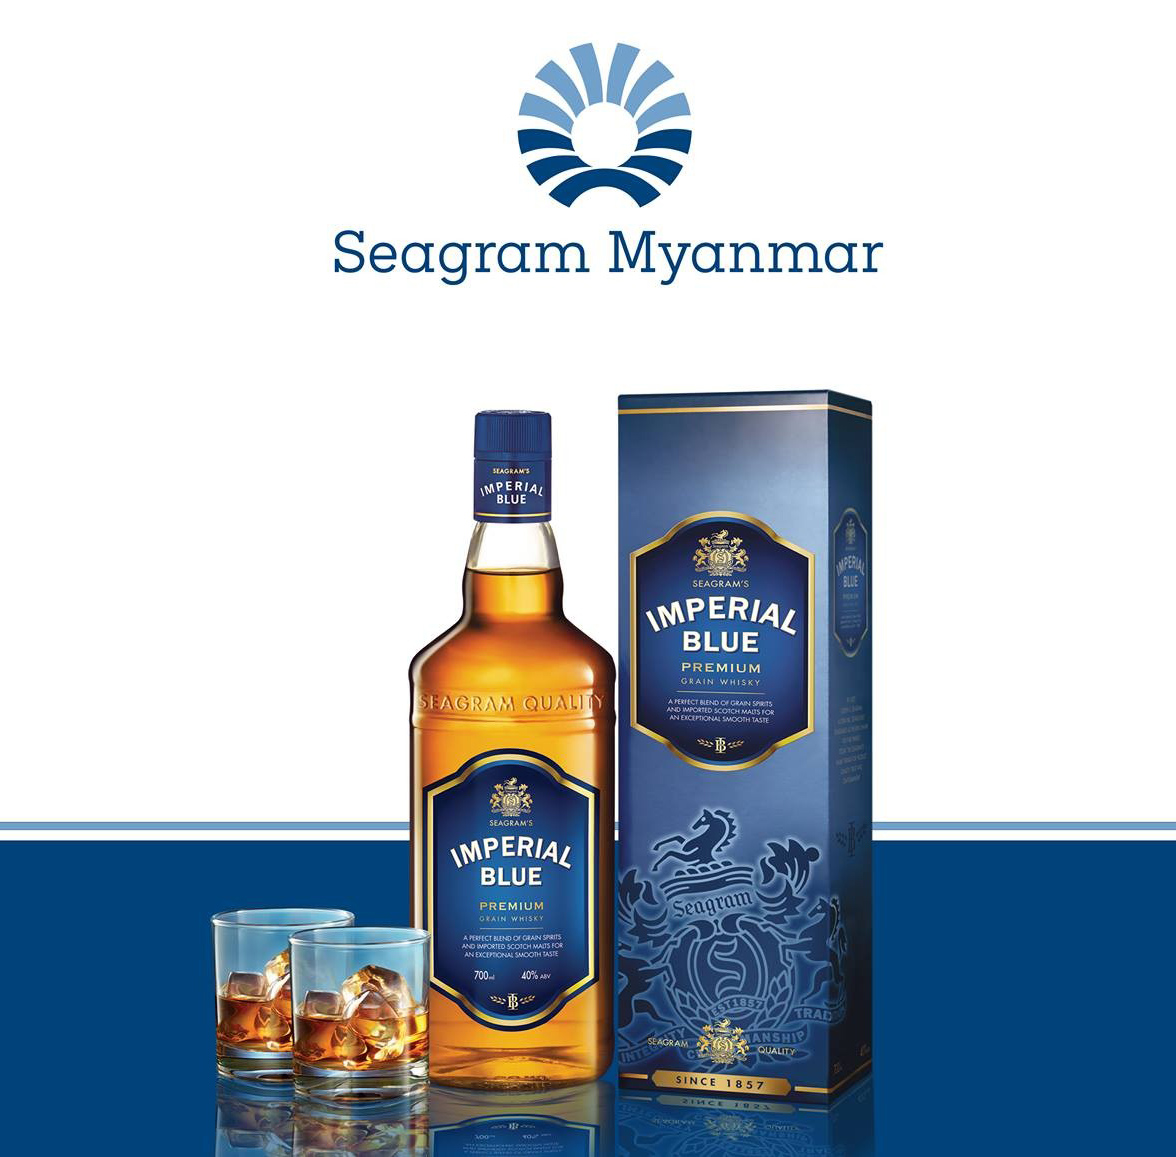 The Seagram Company